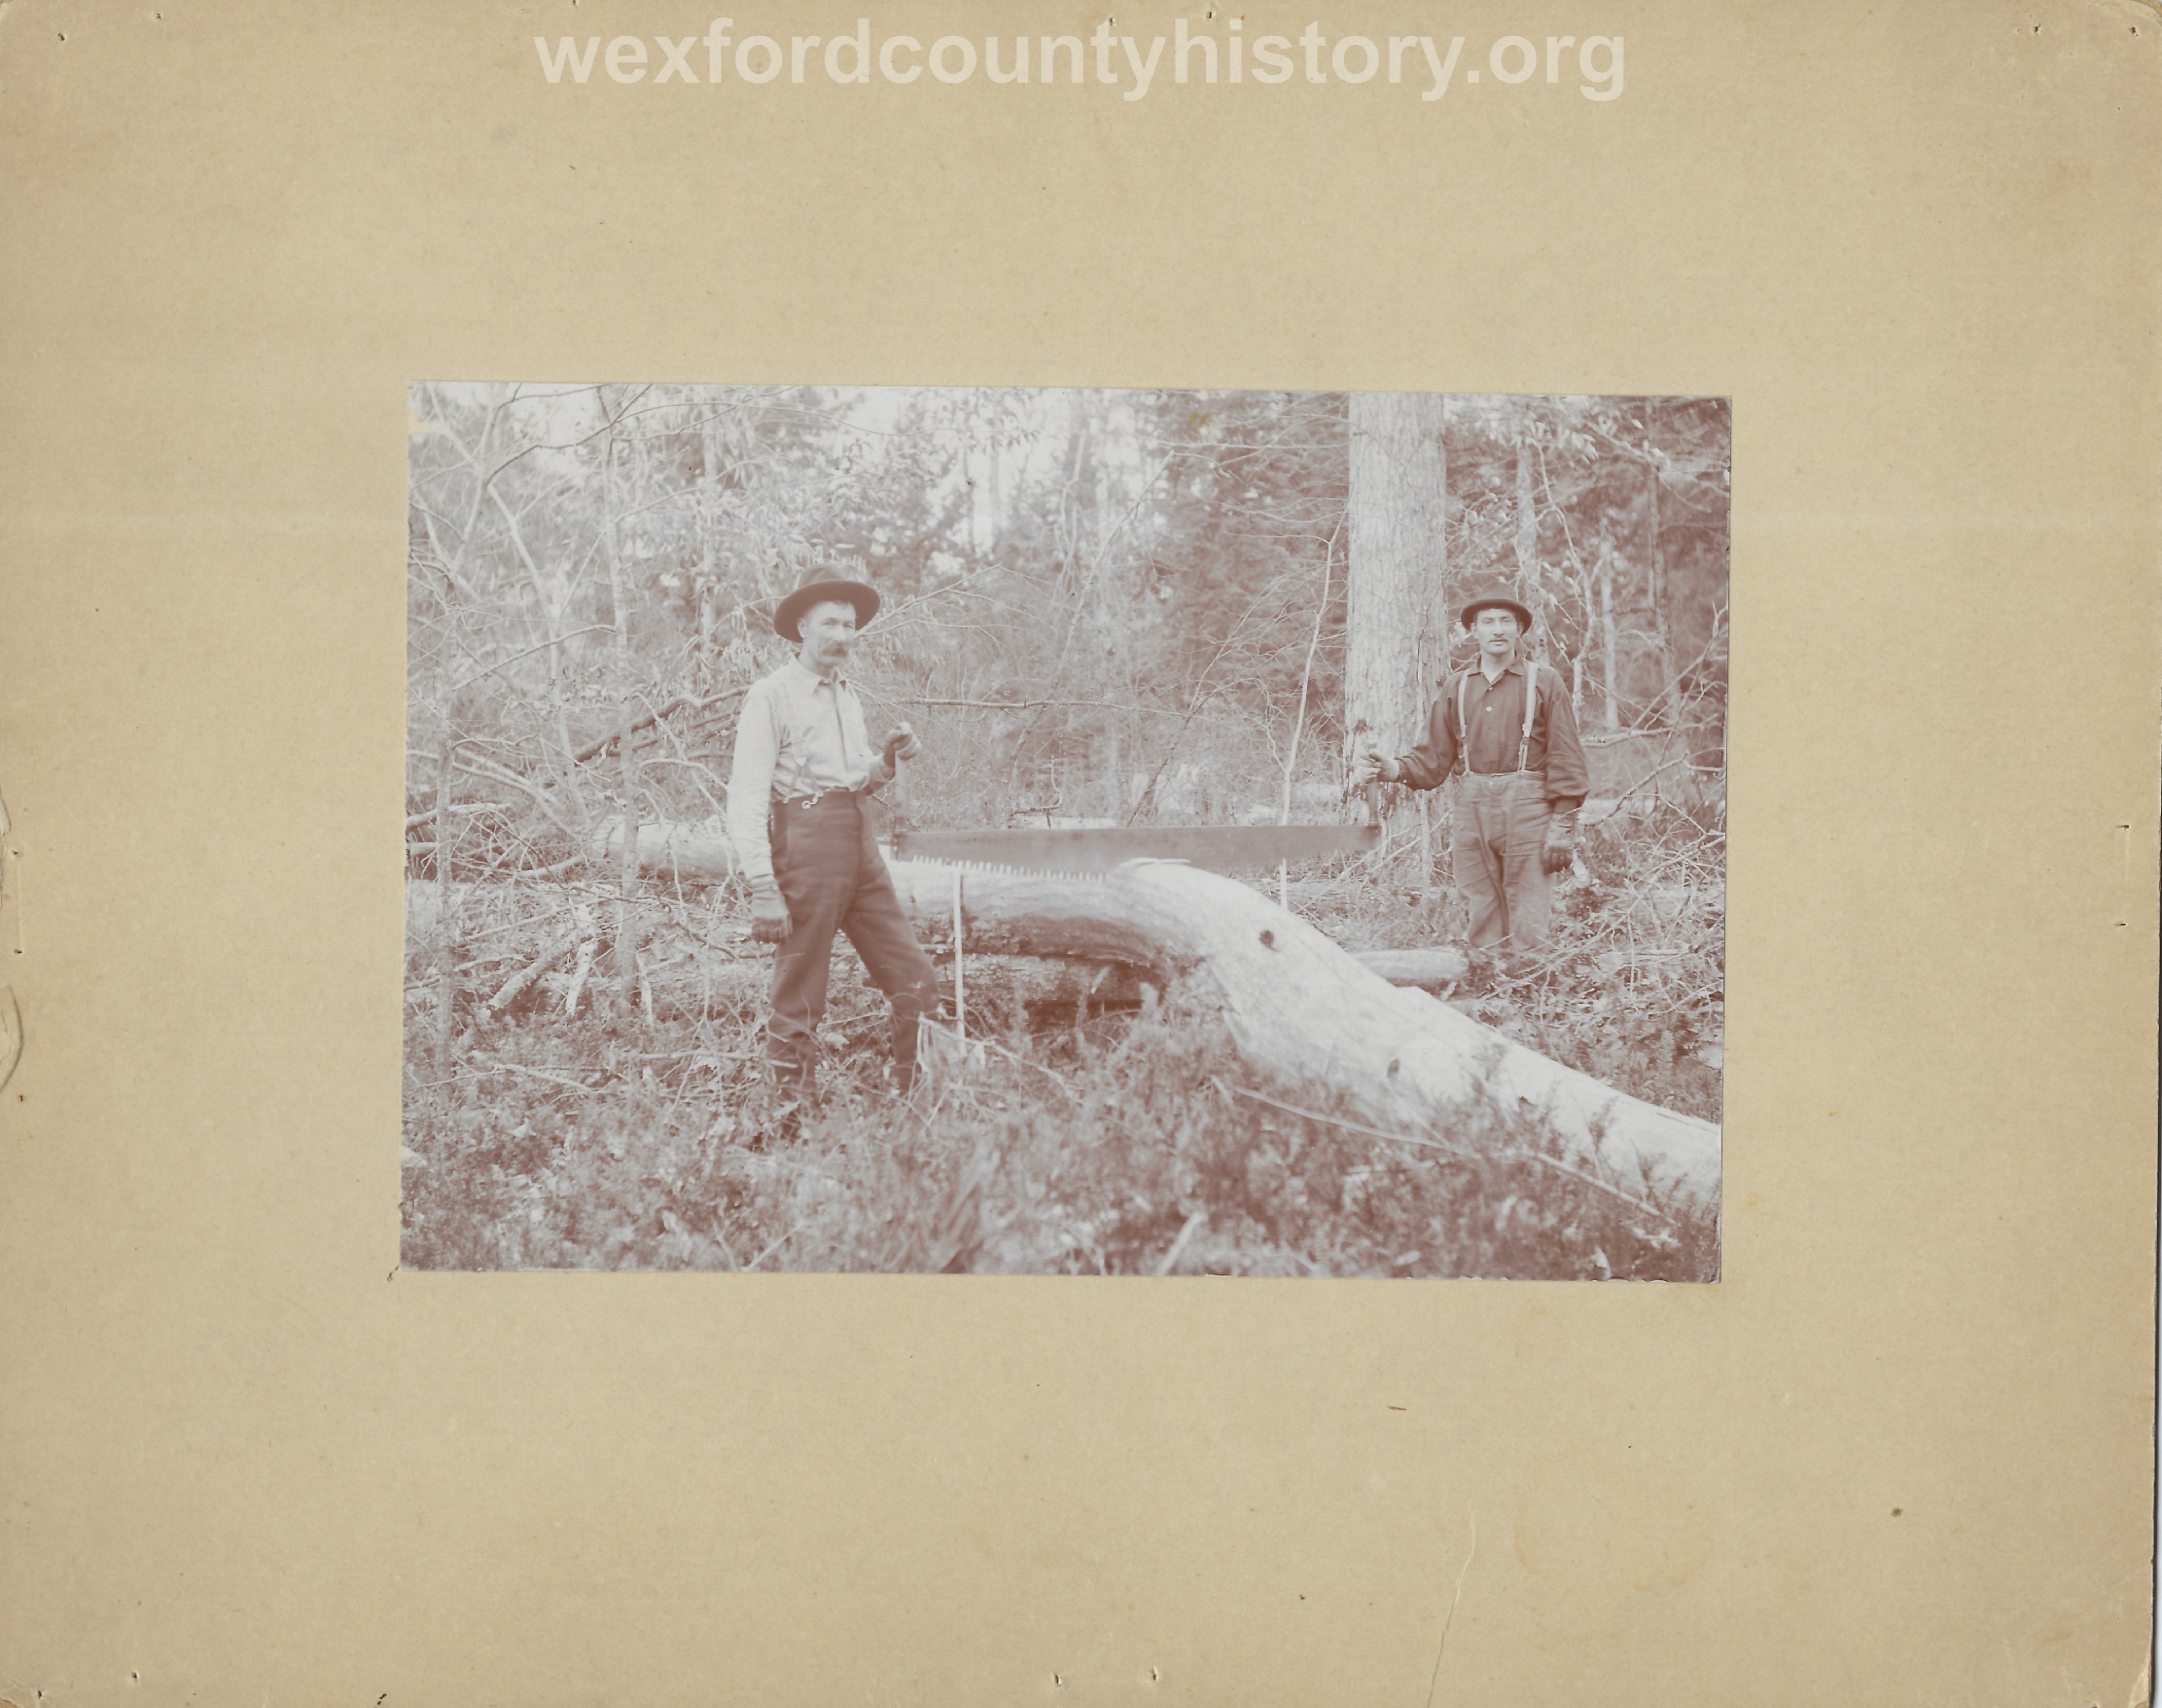 Cadillac-Lumber-Men-Pose-With-Crosscut-Saw